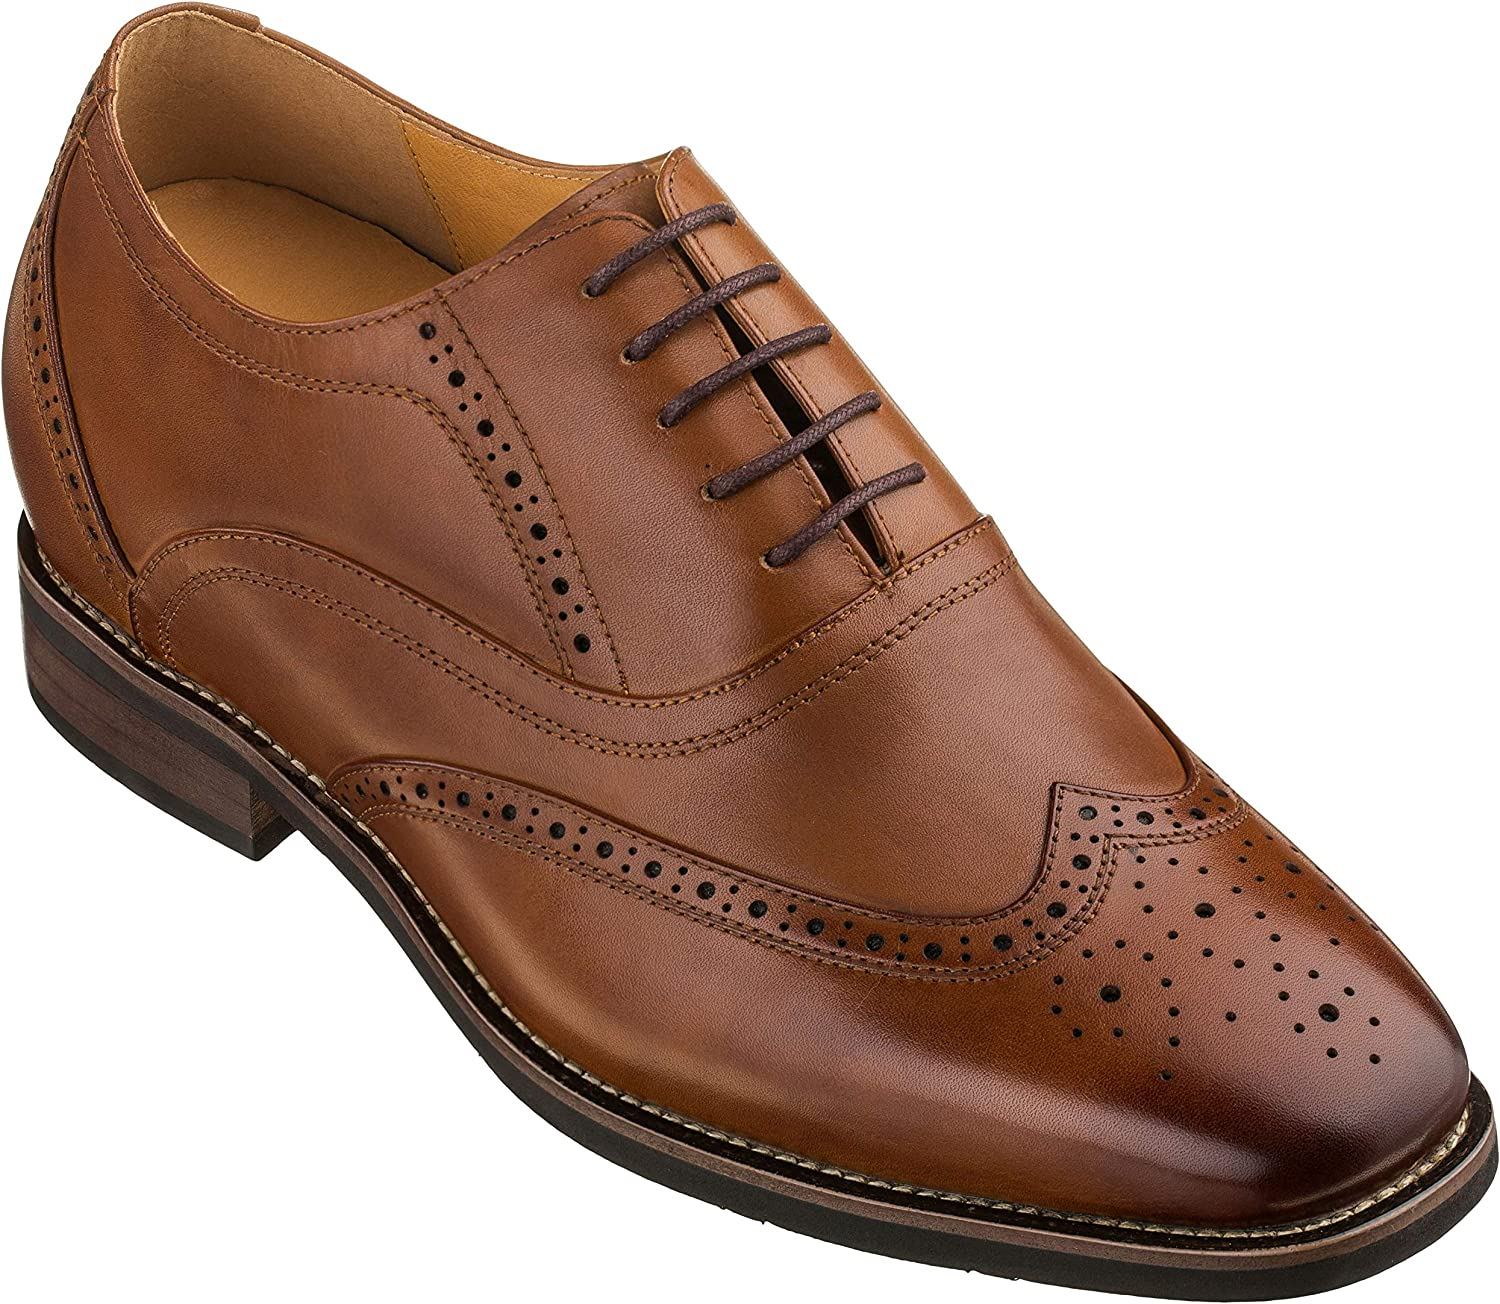 CALTO Men's Invisible Height Increasing Elevator Shoes - Dark Brown Leather Lace-up Brogue Wing-tip Oxfords - 2.6 Inches Taller - G60101